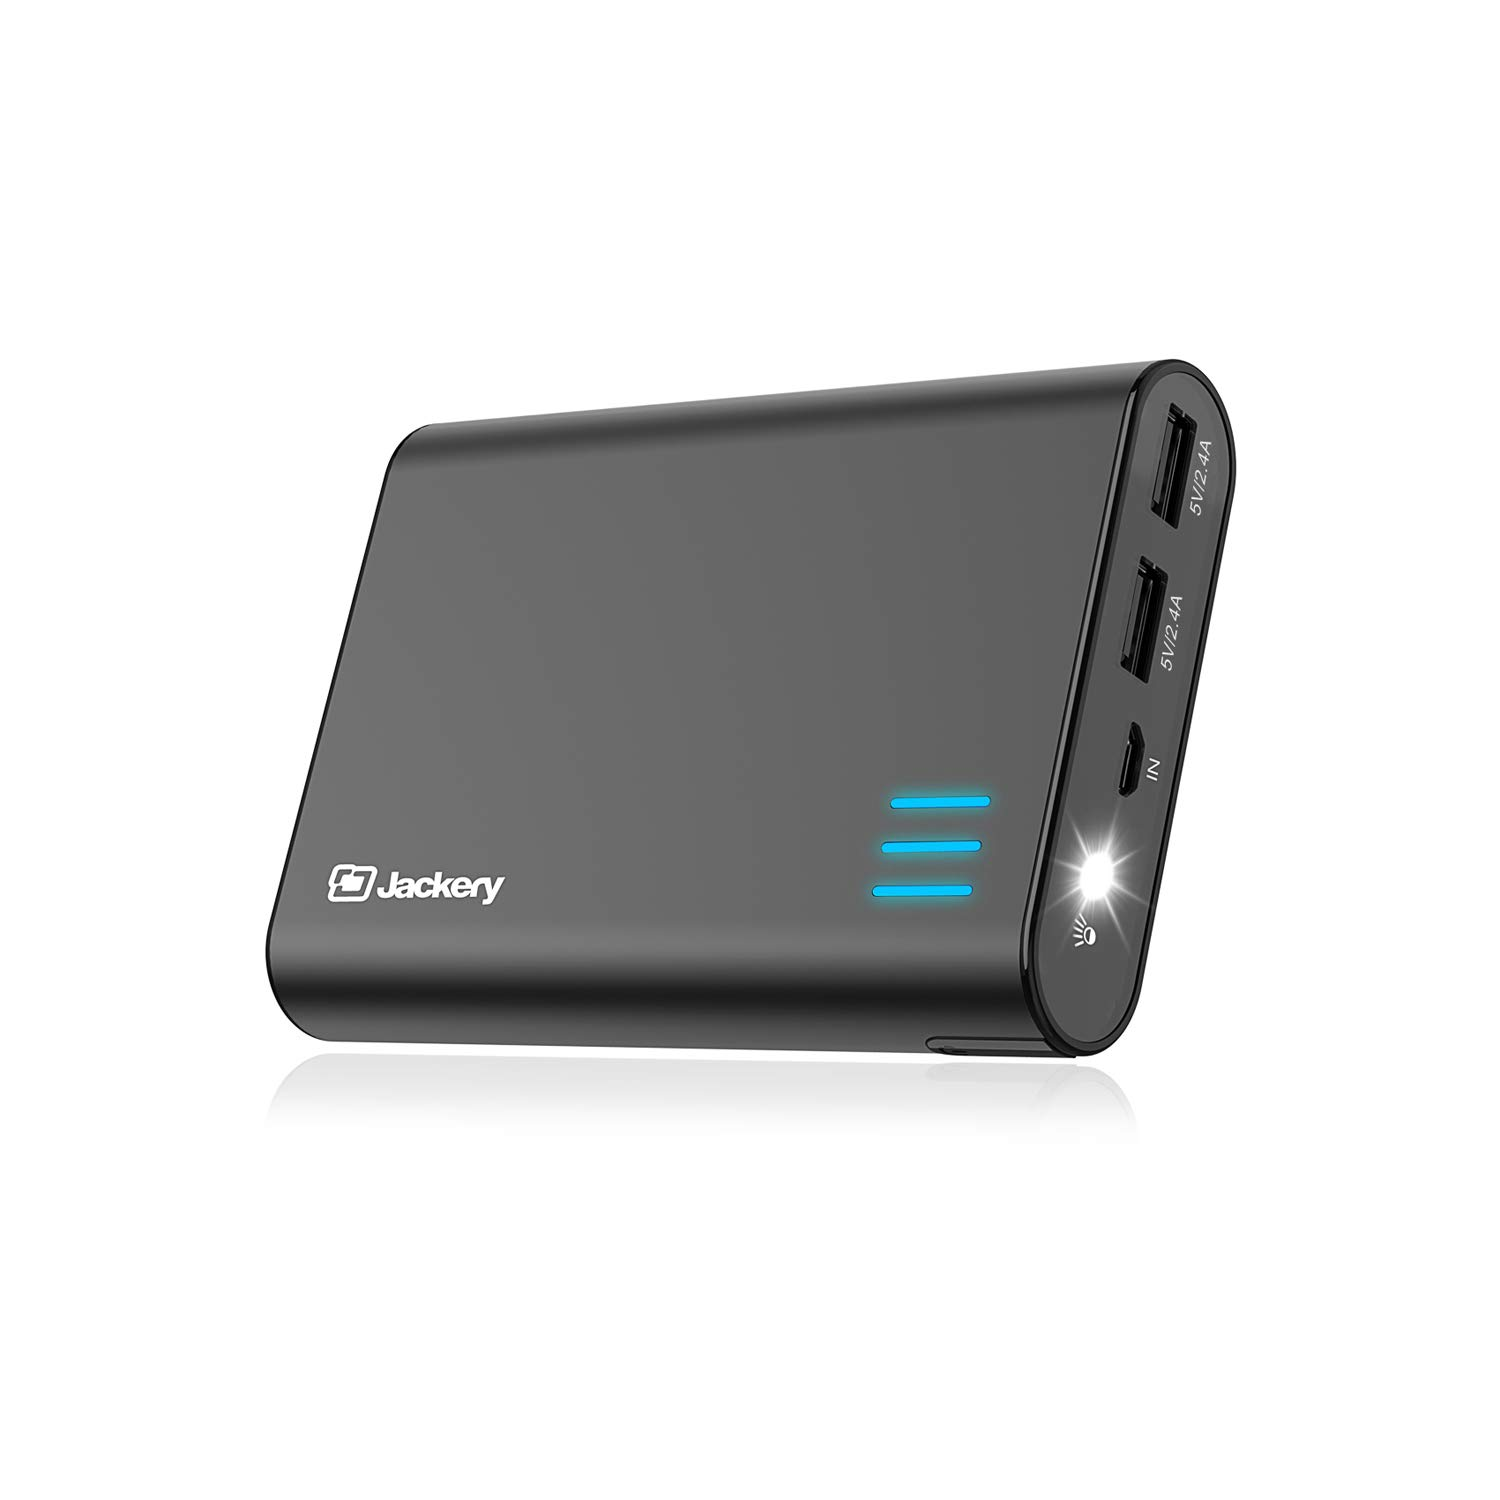 The Jackery Portable Charger travel product recommended by Daniel Shetler on Lifney.